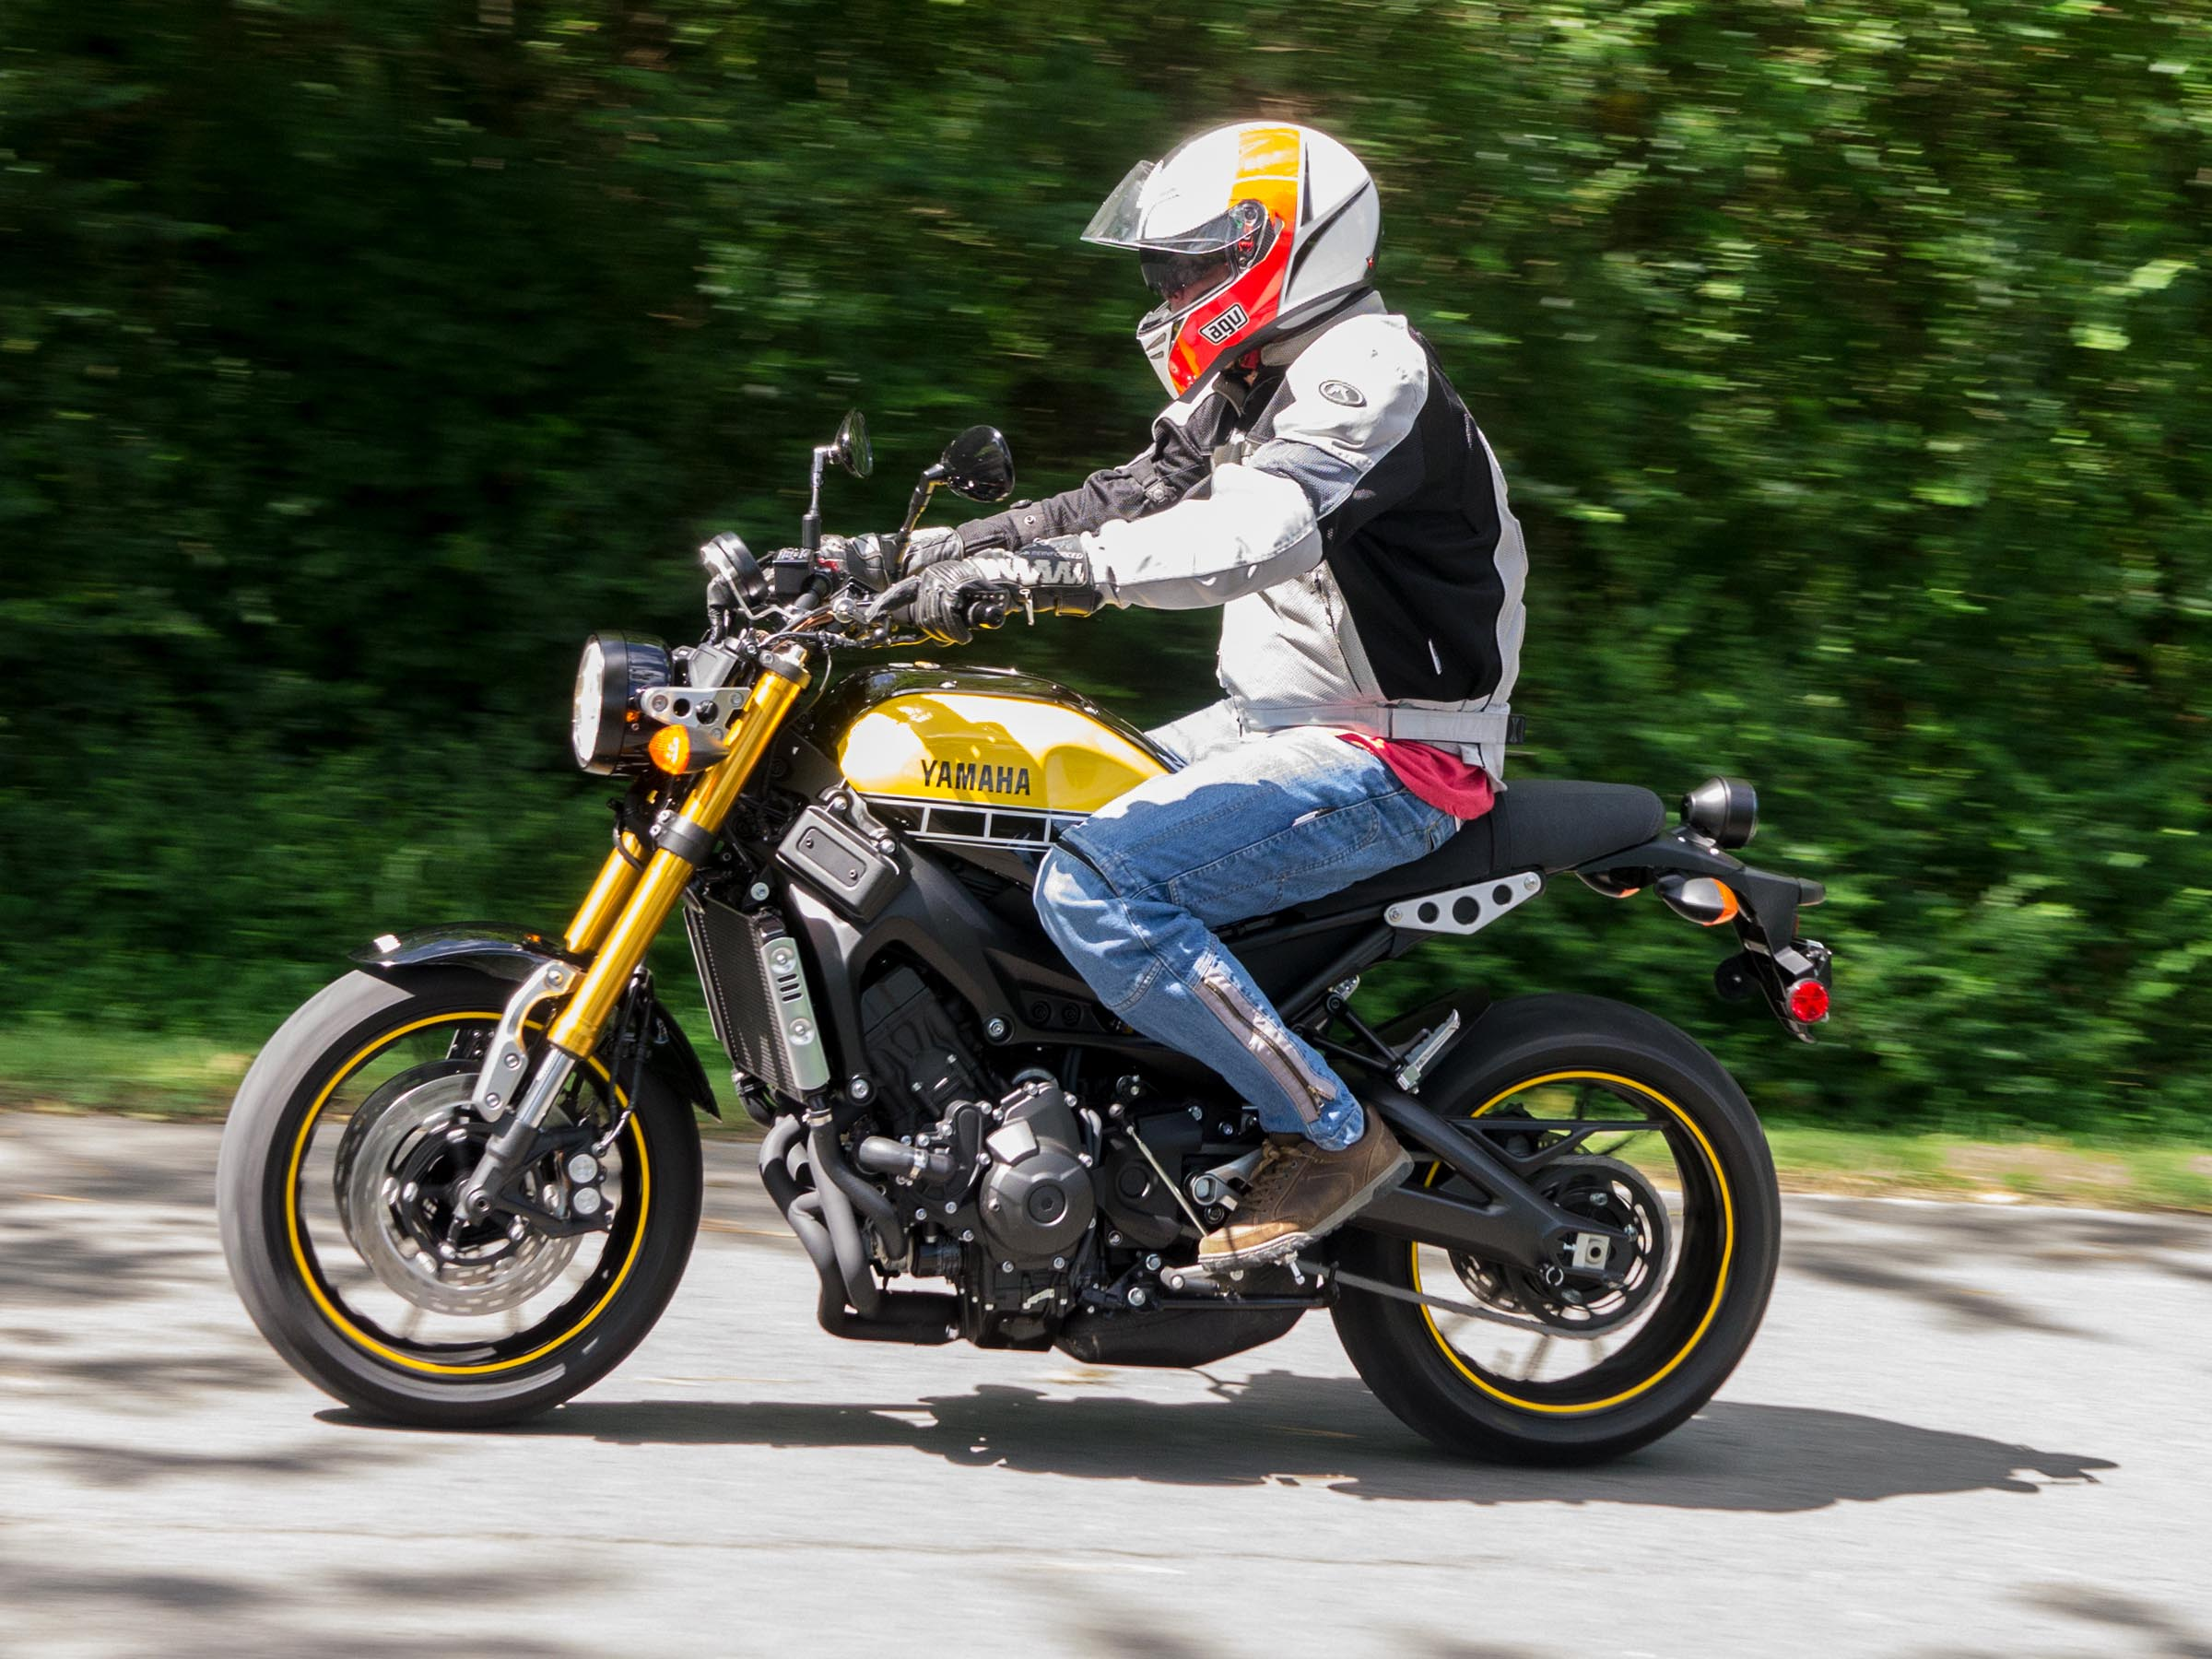 yamaha xsr 900 first impressions review wbw motorcycle words. Black Bedroom Furniture Sets. Home Design Ideas